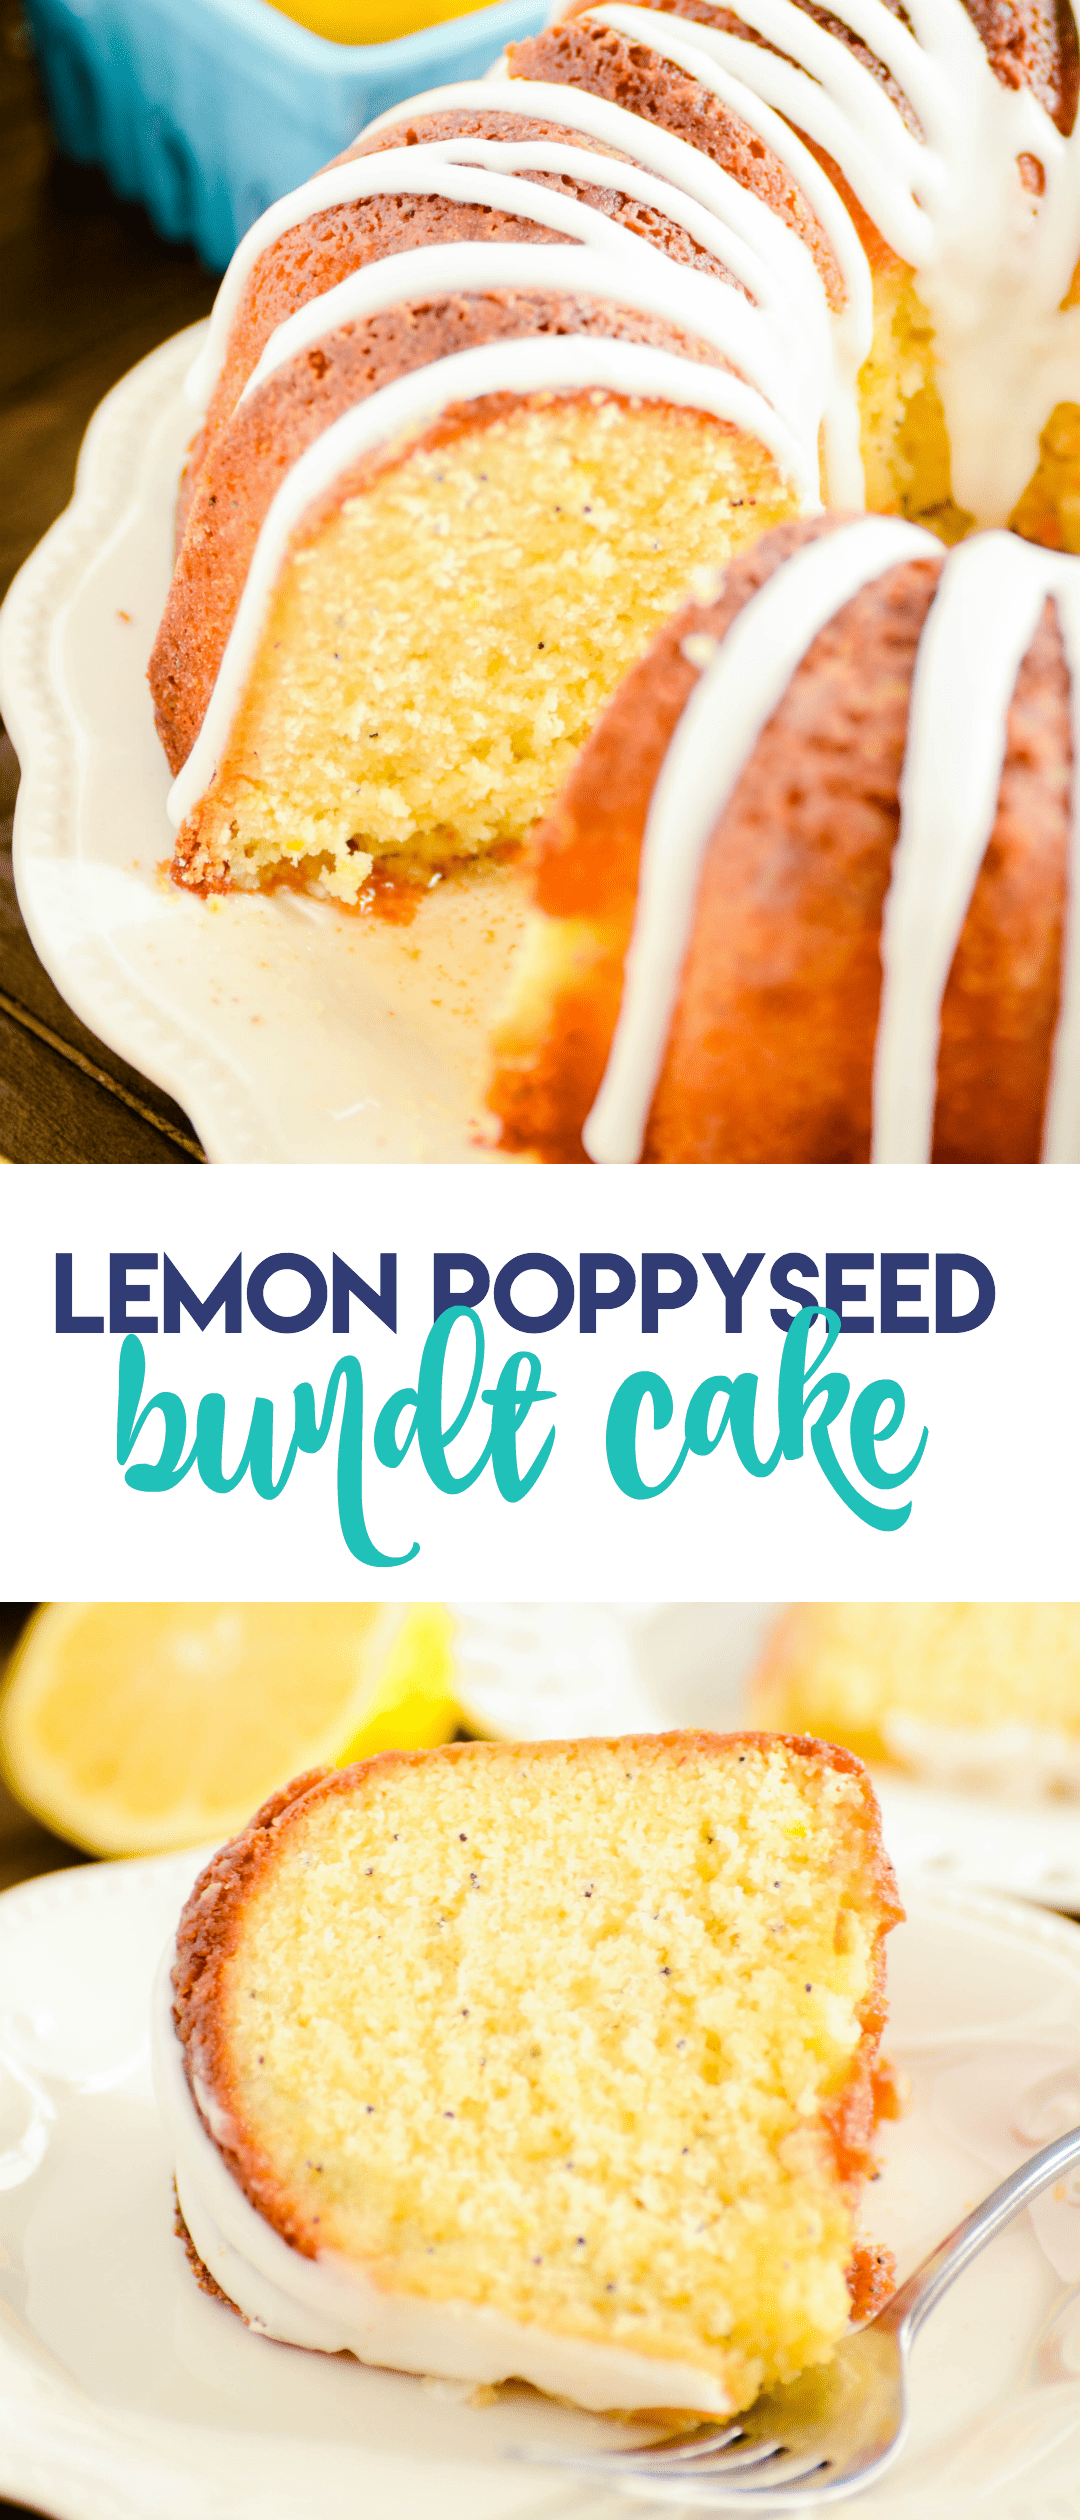 A recipe for homemade lemon poppyseed pound cake infused with a lemony simple syrup and topped with a lemon glaze.